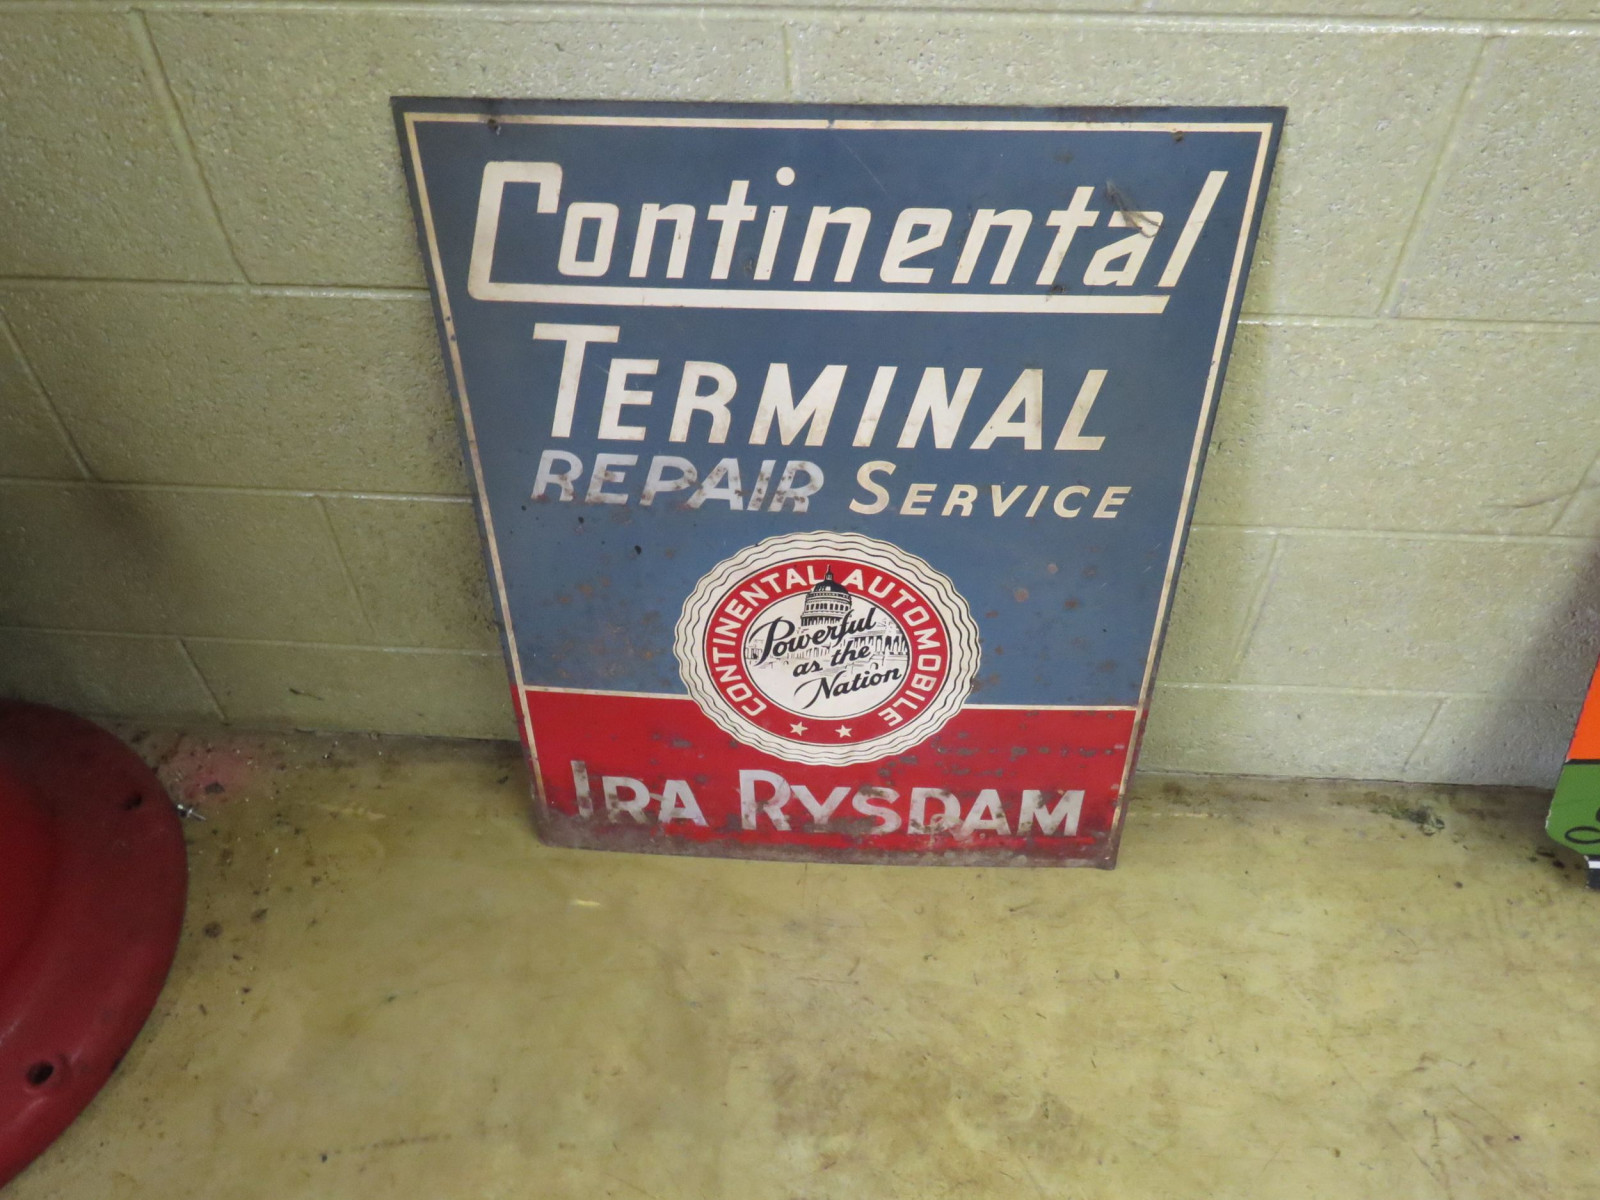 Continental Terminal Painted Tin Sign - Image 2